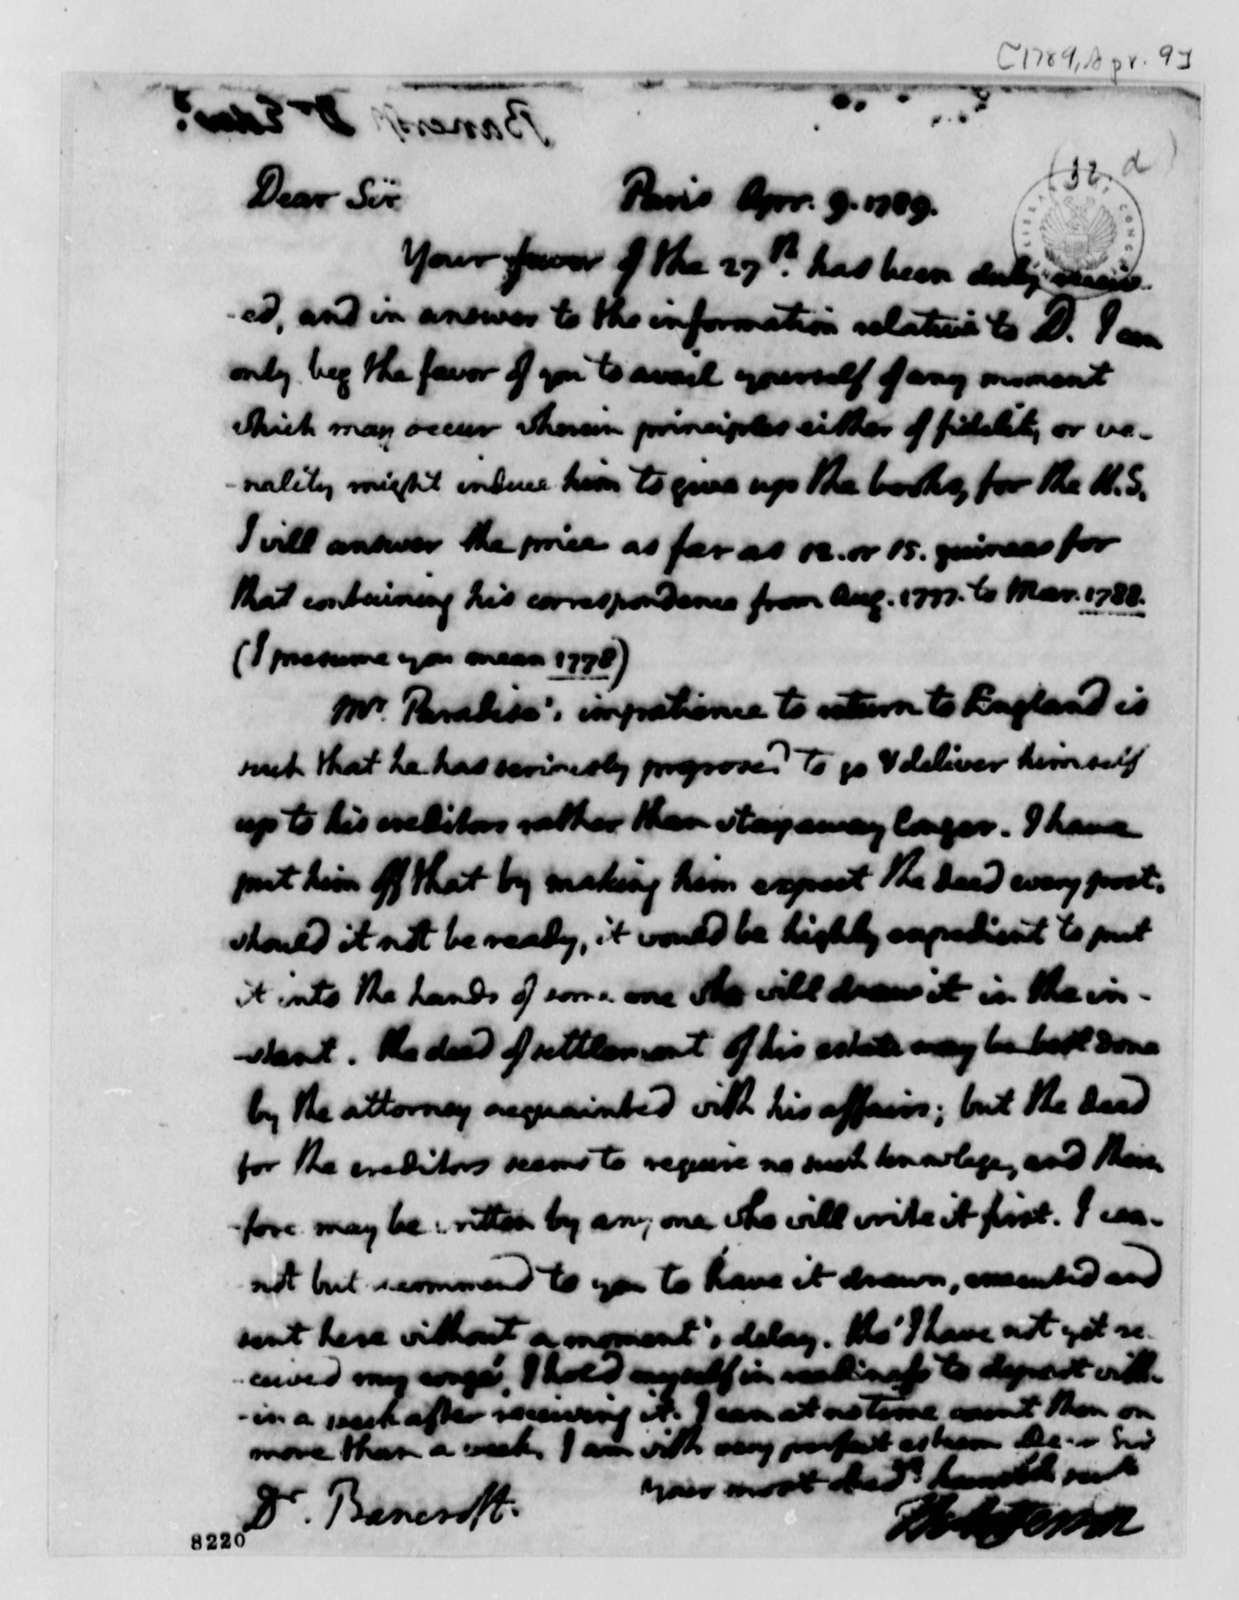 Thomas Jefferson to Edward Bancroft, April 9, 1789